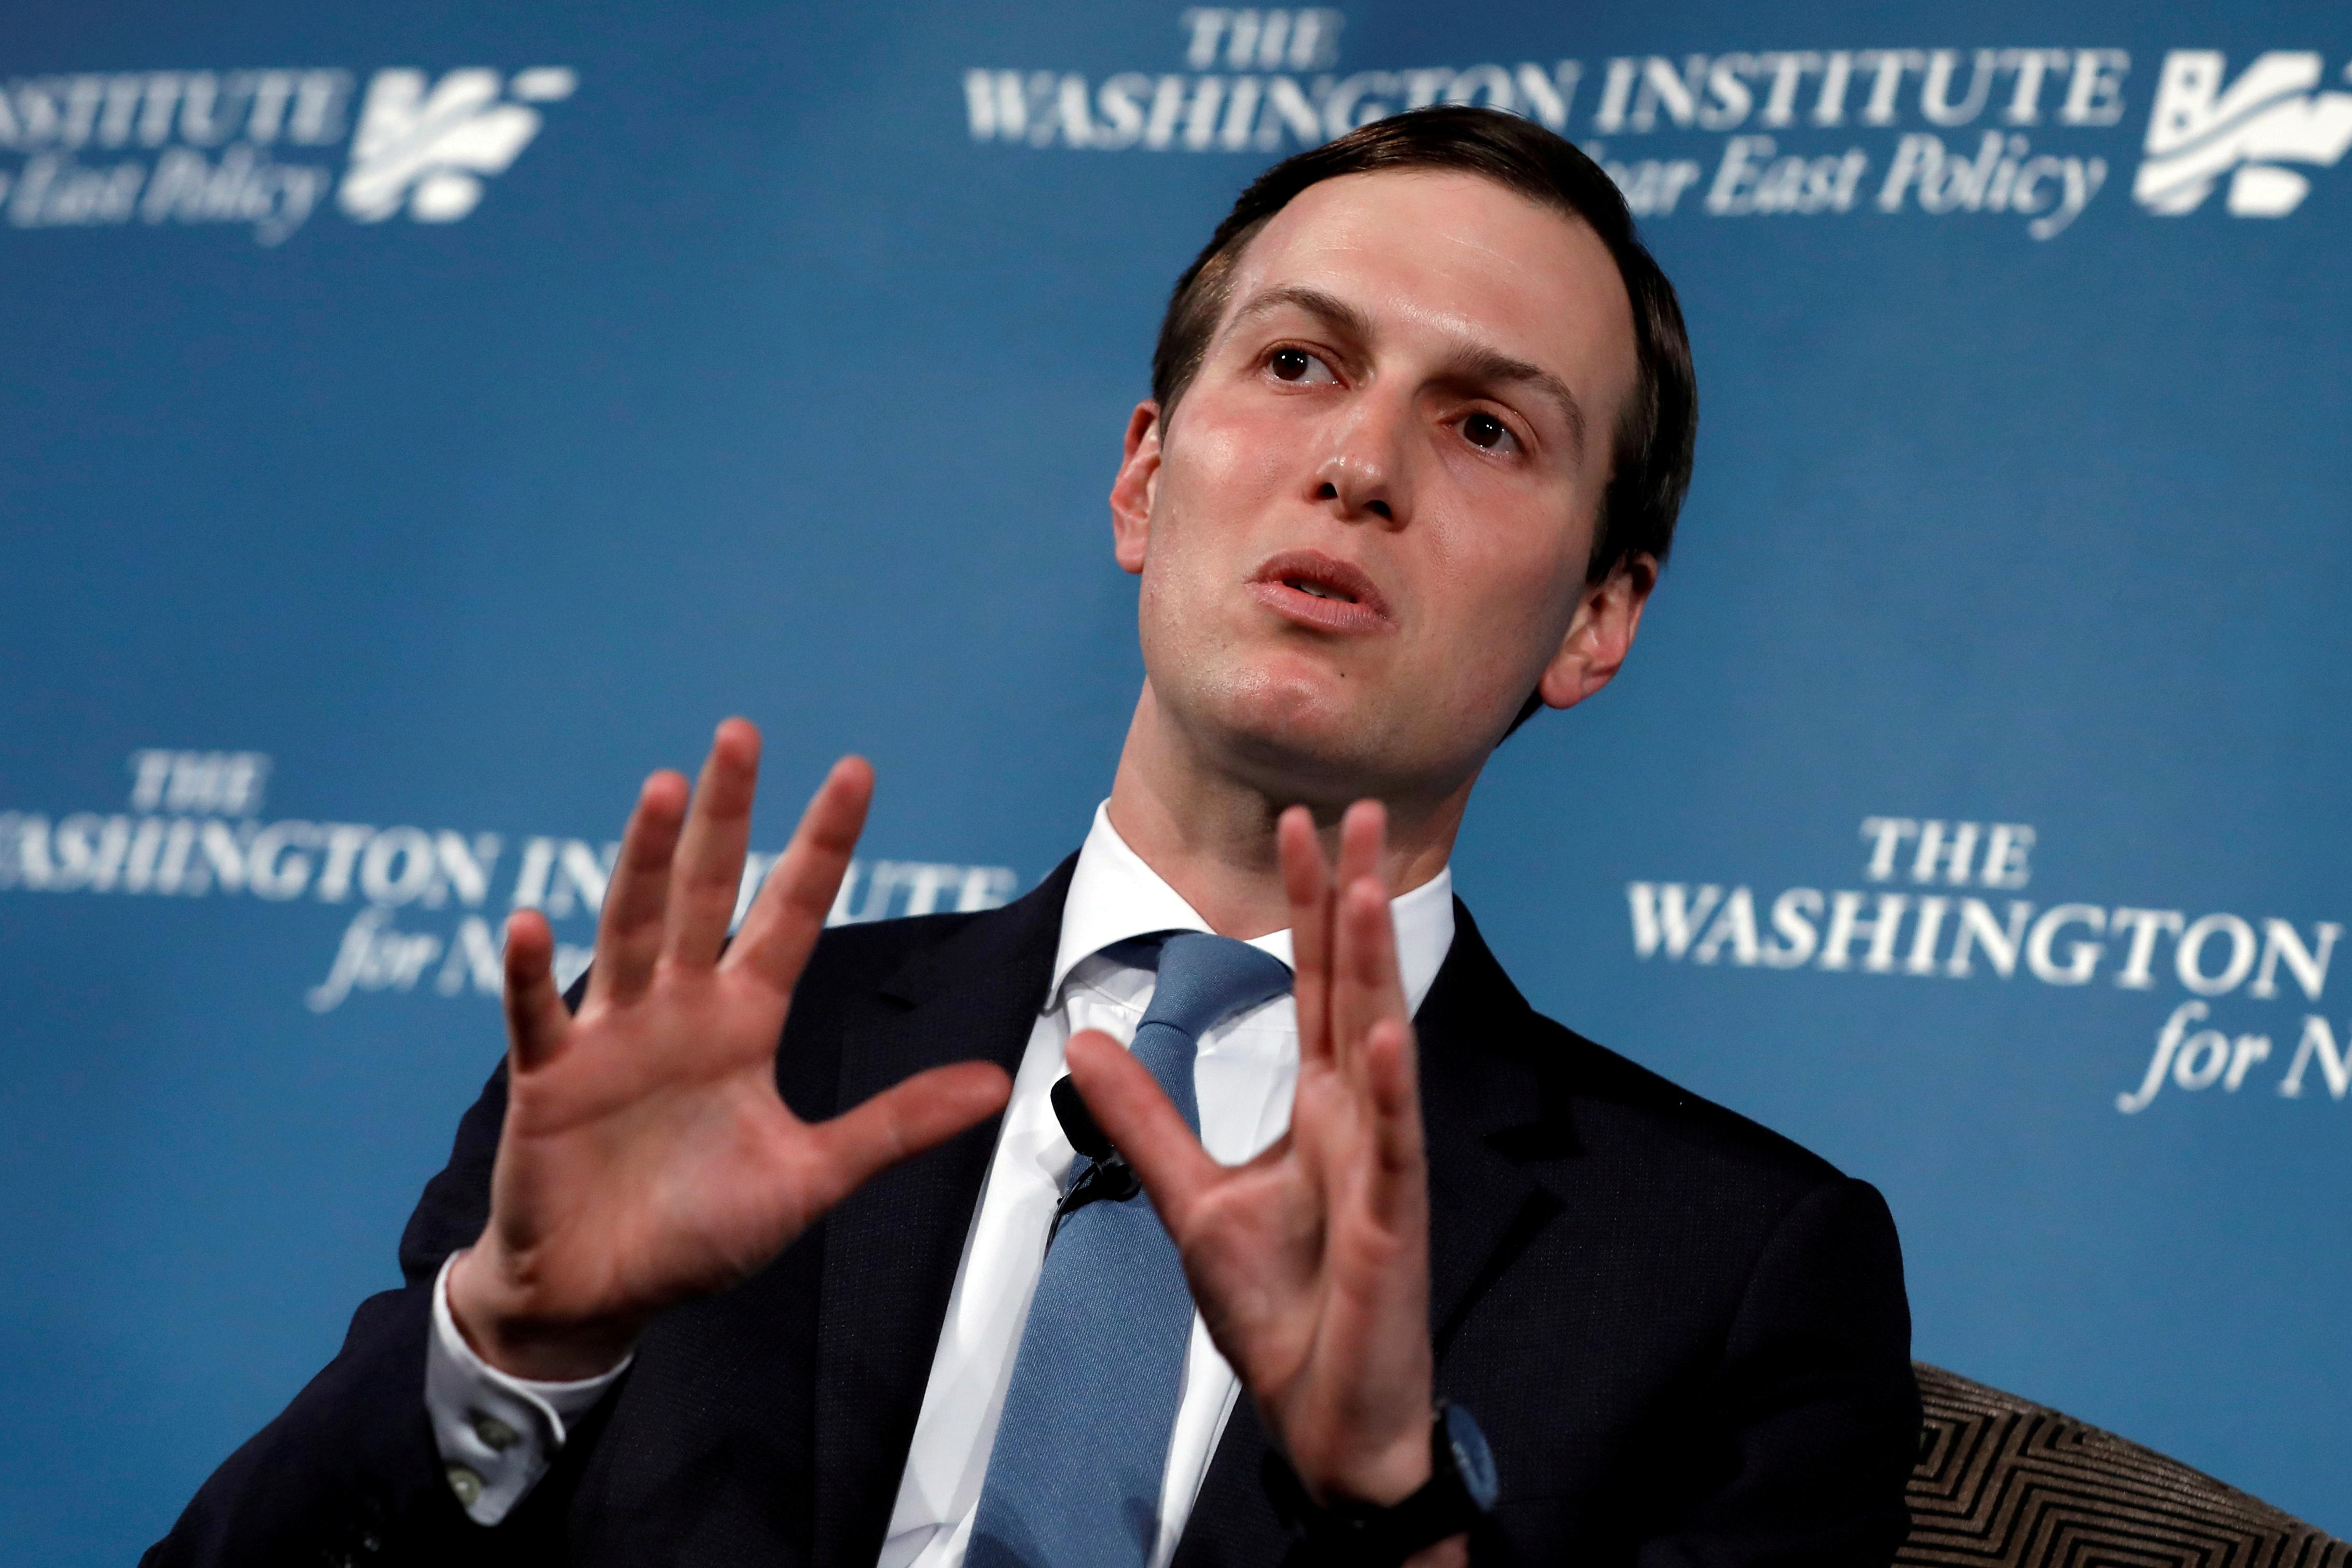 "FILE PHOTO: White House senior adviser Jared Kushner, U.S. President Donald Trump's son-in-law, speaks during a discussion on ""Inside the Trump Administration's Middle East Peace Effort"" at a dinner symposium of the Washington Institute for Near East Policy (WINEP) in Washington, U.S., May 2, 2019. REUTERS/Yuri Gripas/File Photo"